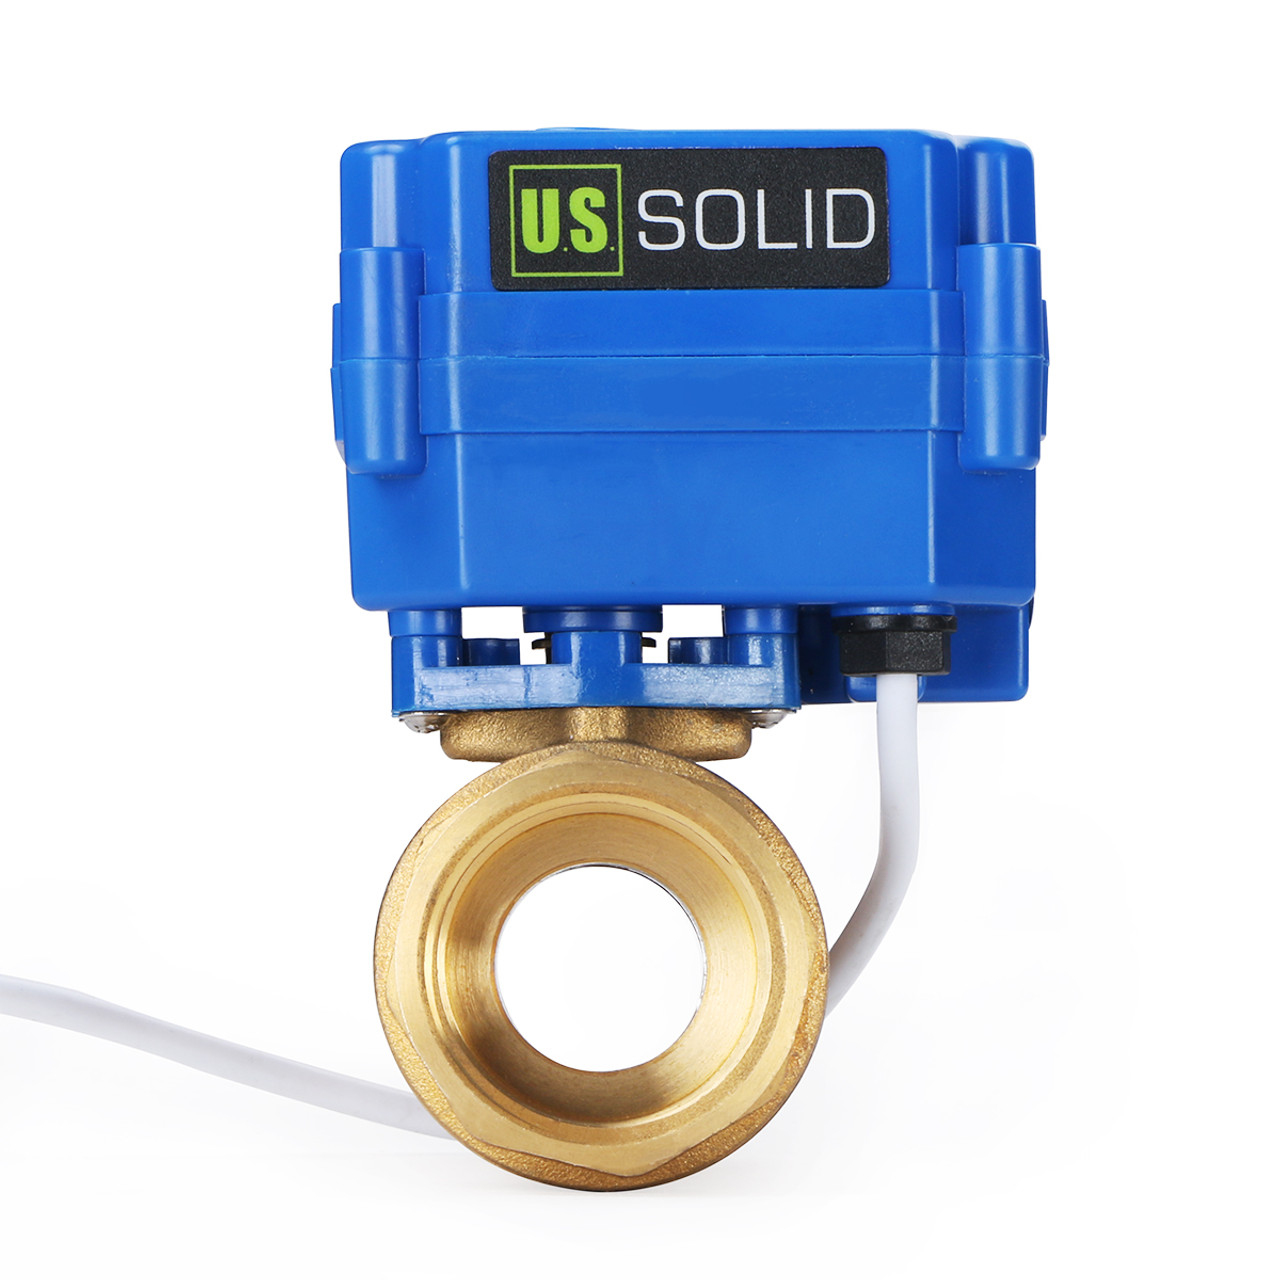 """U.S. Solid Motorized Ball Valve- 1"""" Brass Electrical Ball Valve with Standard Port, 9-24 V DC, 2 Wire Reverse Polarity"""